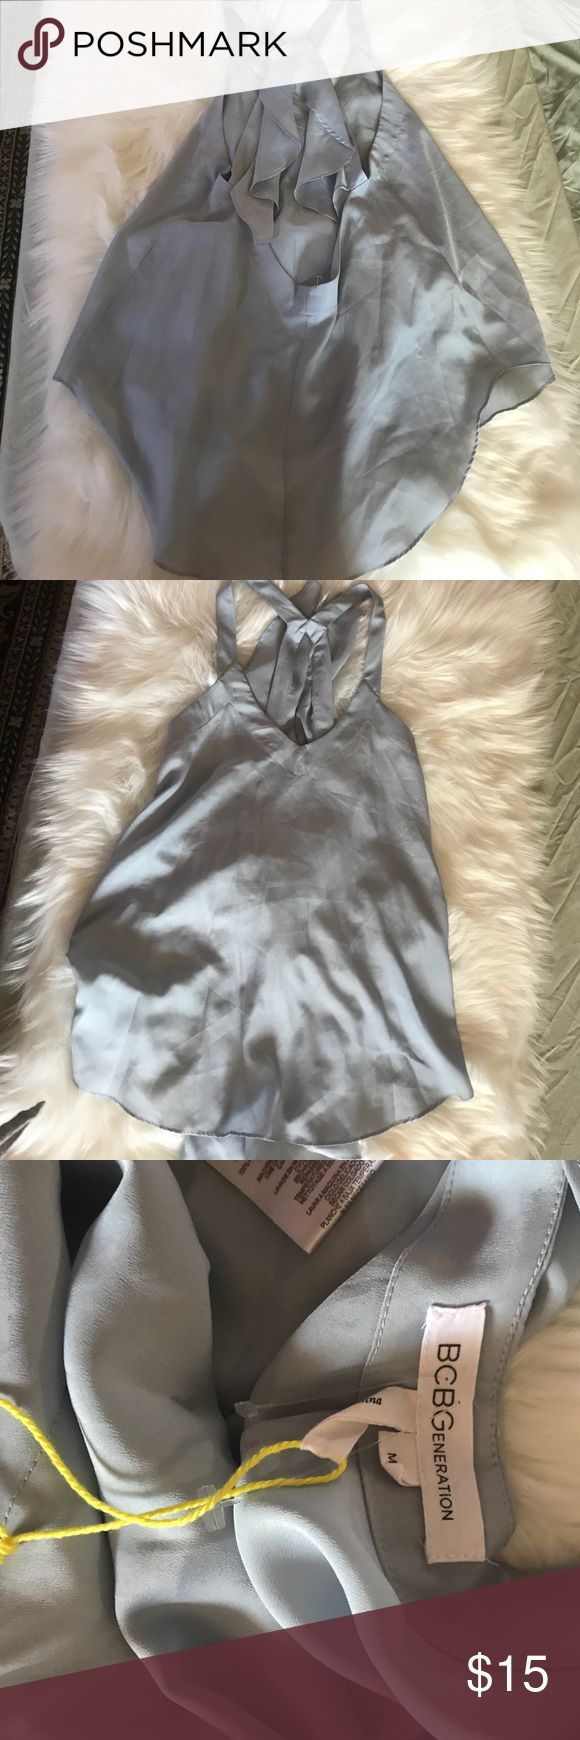 NWOT BCBG Ruffle Back Tank Show stopper. Lower cut back with ruffles. V-neck, hi-lo top. Flowy and breezy. BCBGeneration Tops Tank Tops